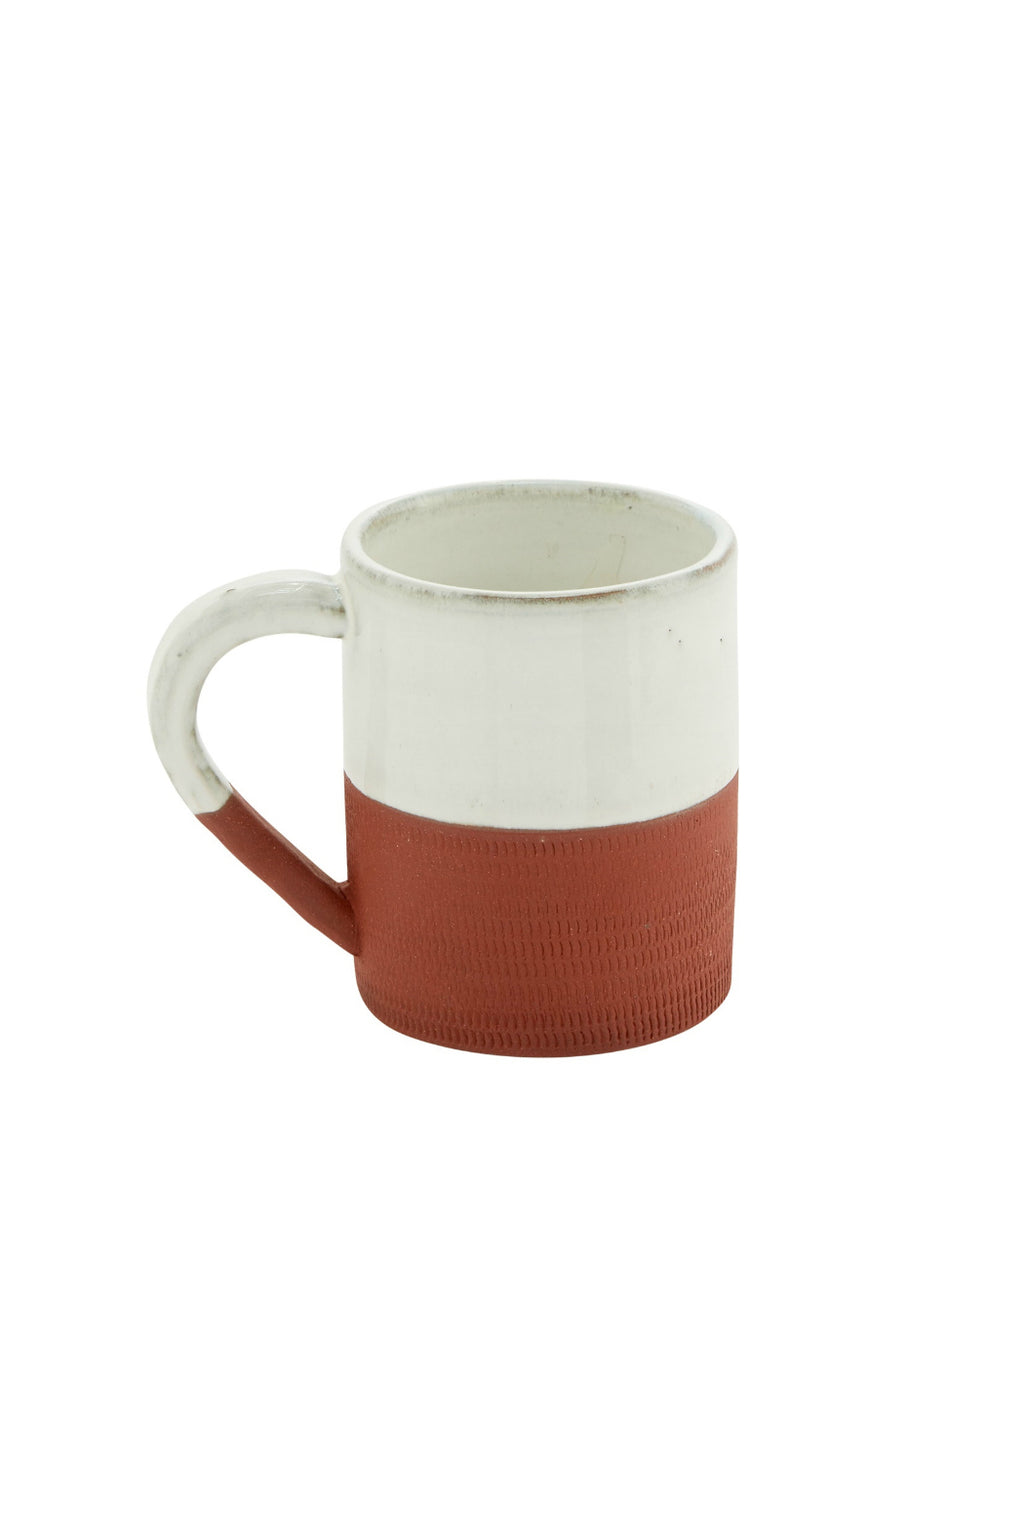 Accent Decor Katana Mug